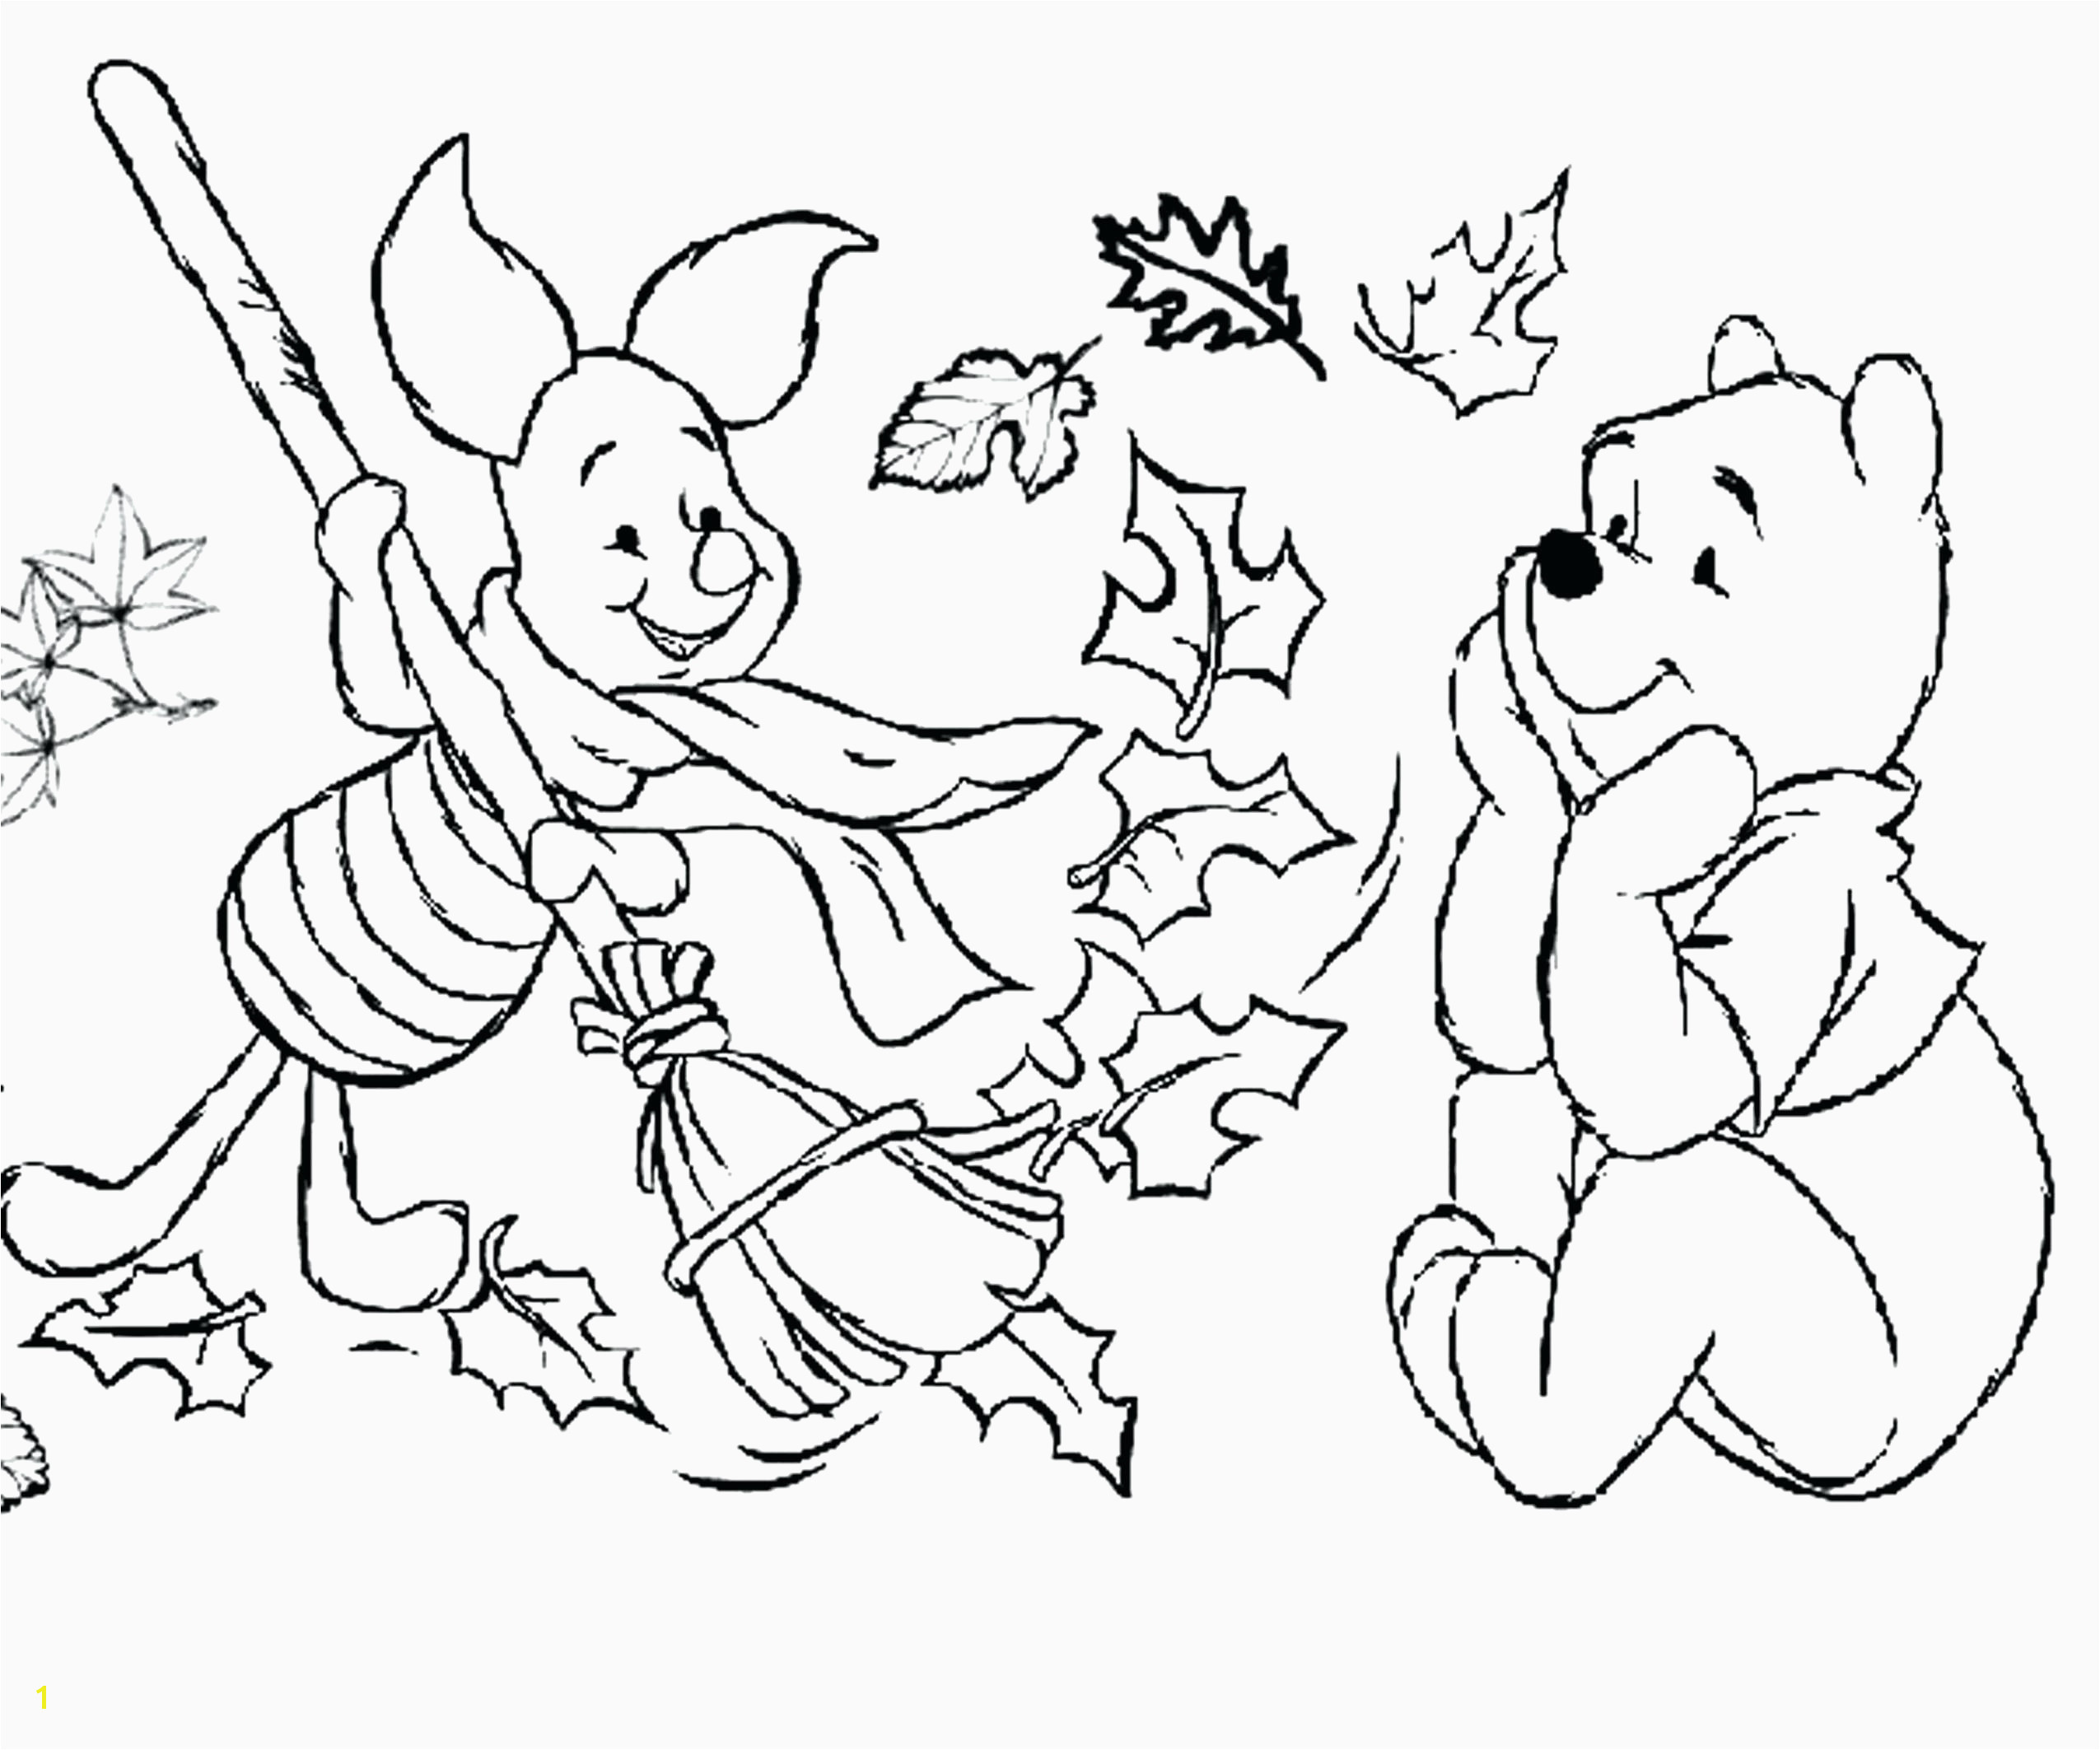 Spider Coloring Pages Preschool Fall Coloring Pages 0d Coloring Page Fall Coloring Pages for Kids